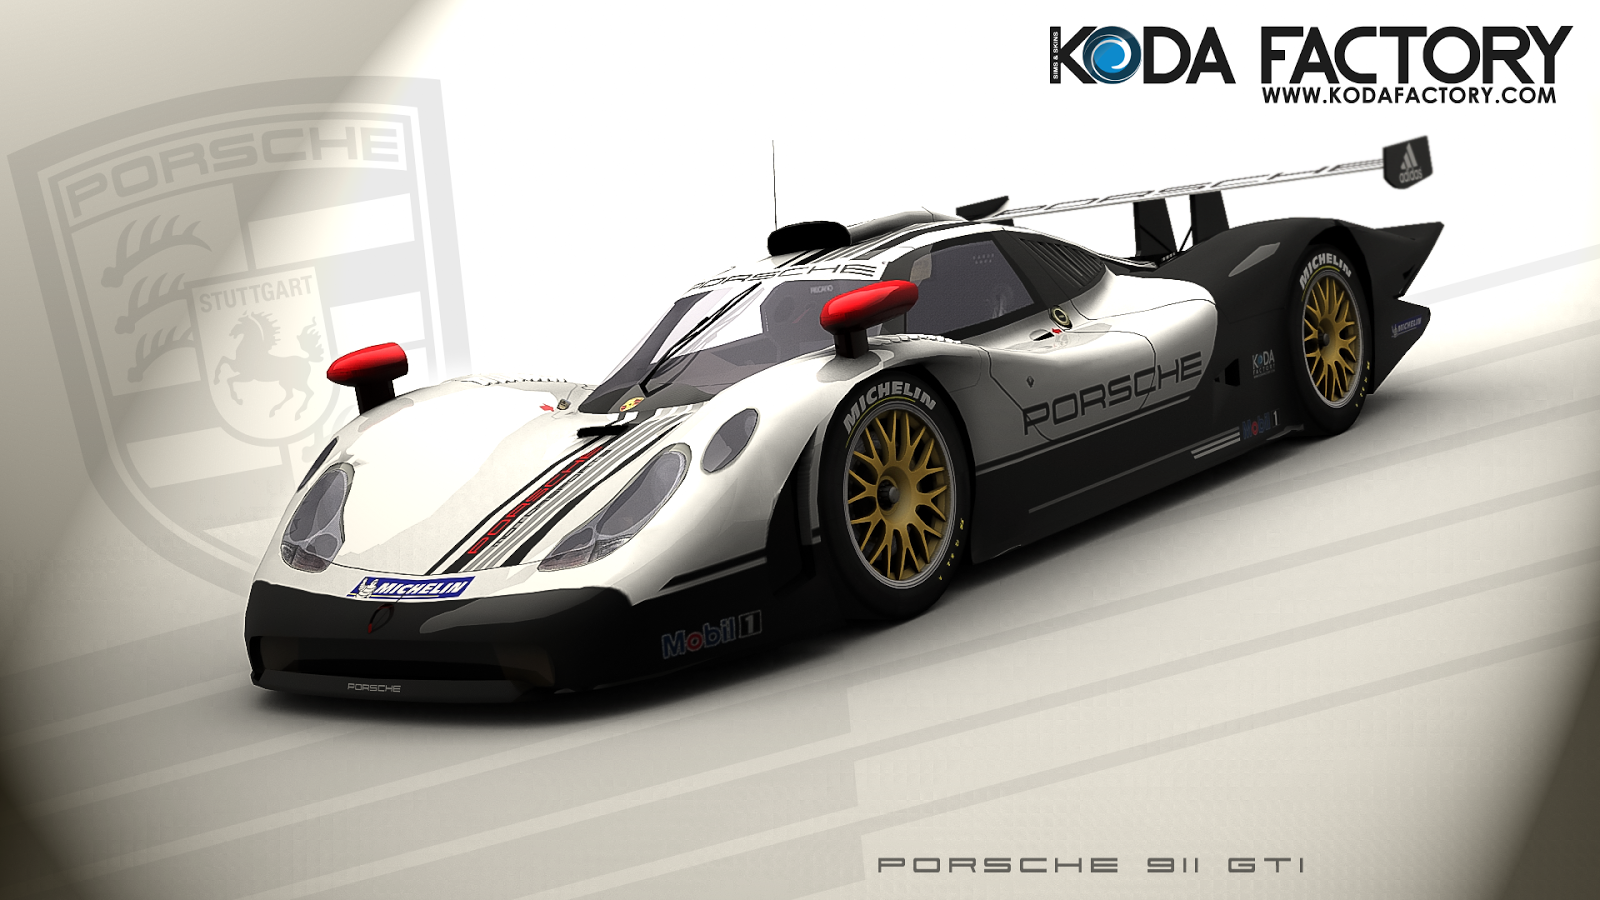 koda factory porsche 911 gt1 artwork. Black Bedroom Furniture Sets. Home Design Ideas